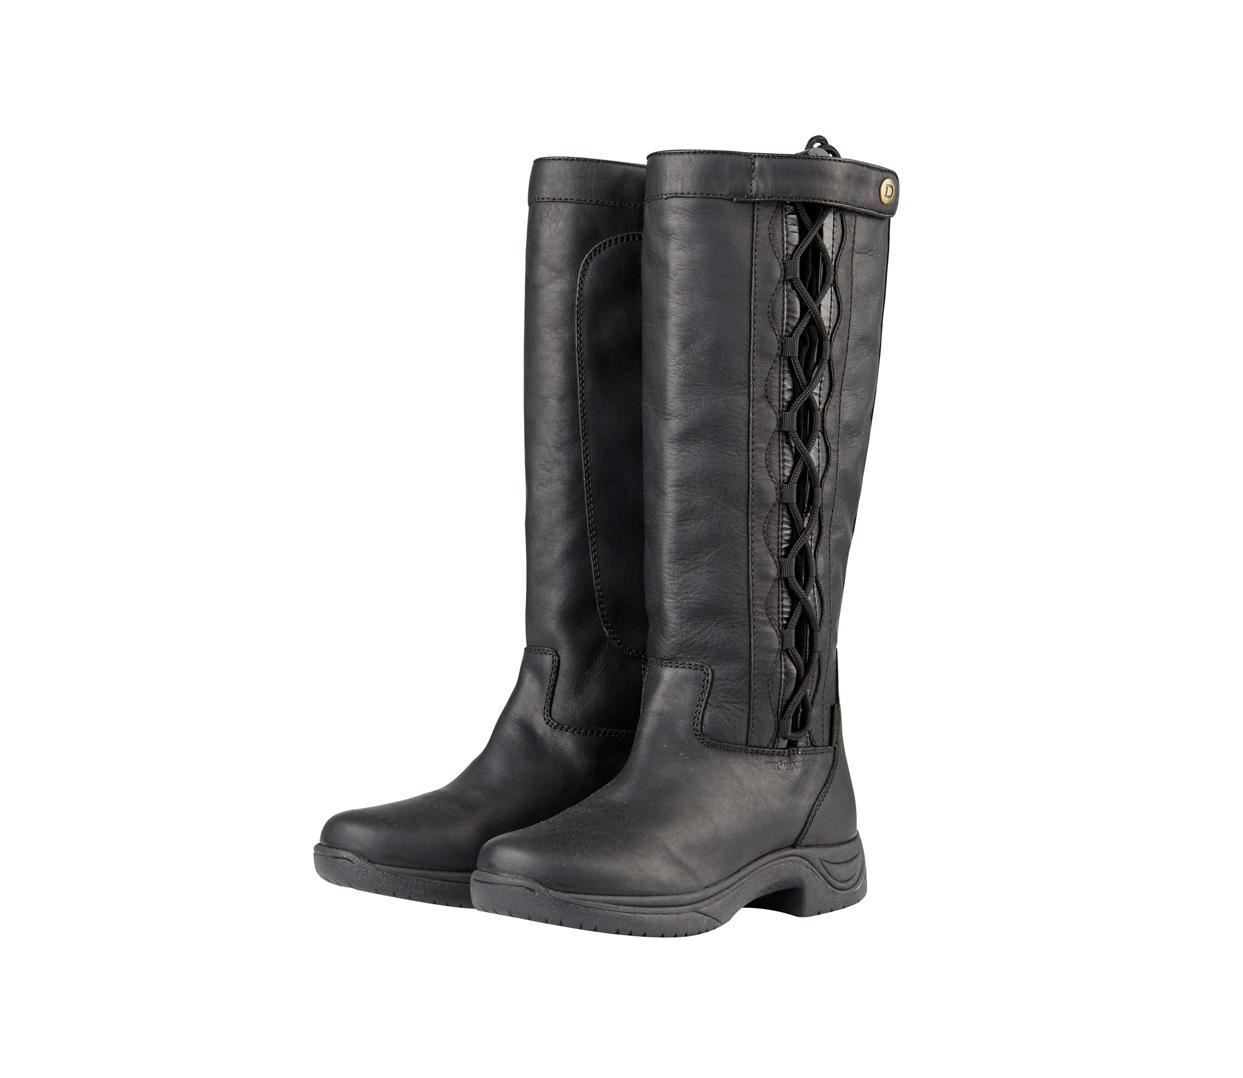 Dublin Pinnacle Grain Waterproof Breathable Country Riding Lace Womens New Boots